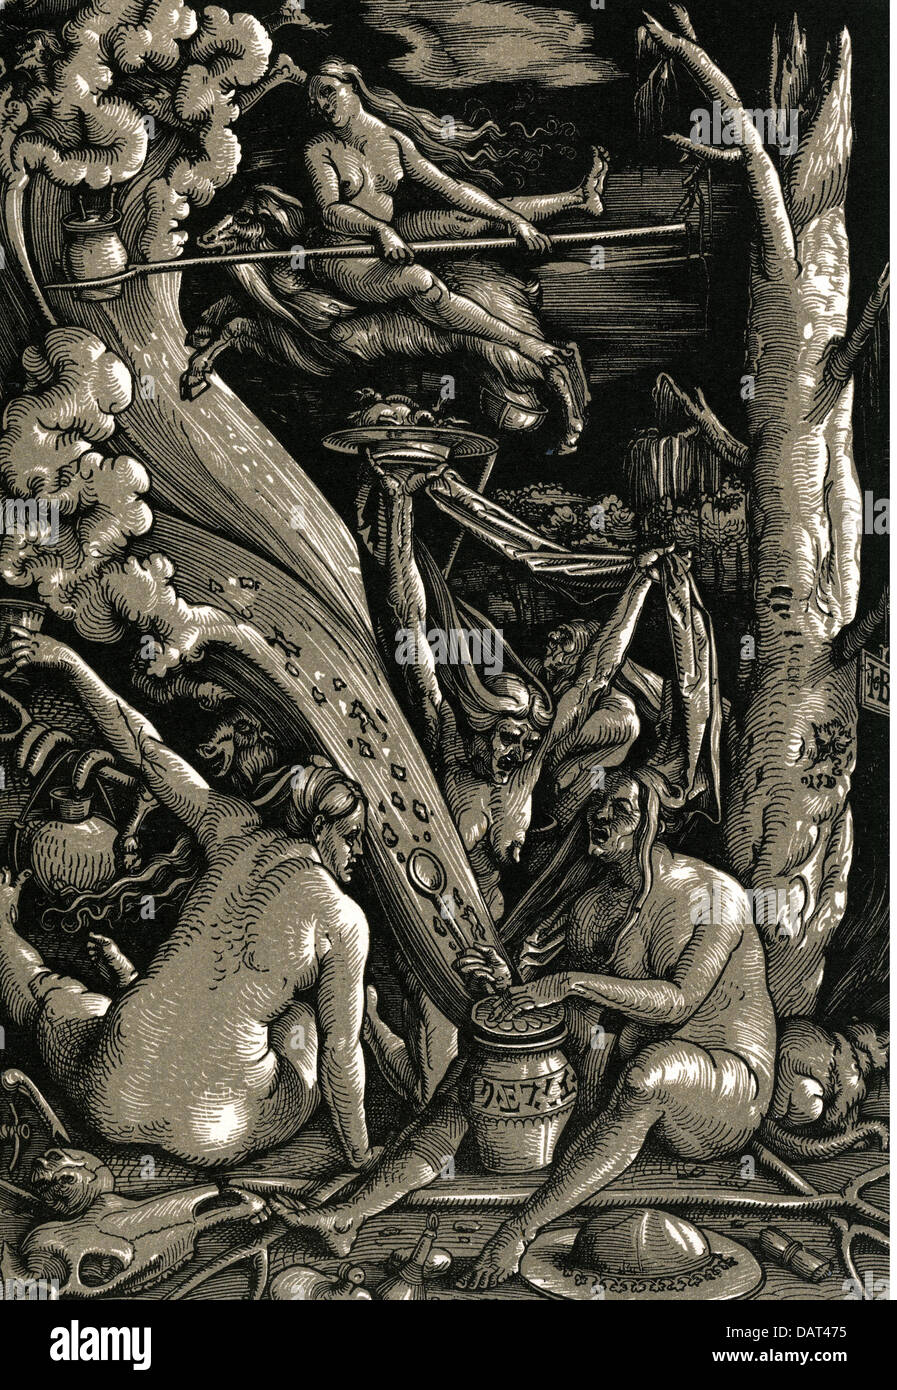 witches, witches sabbath, woodcut by Hans Baldung genannt Grien, 1510, Additional-Rights-Clearences-NA - Stock Image